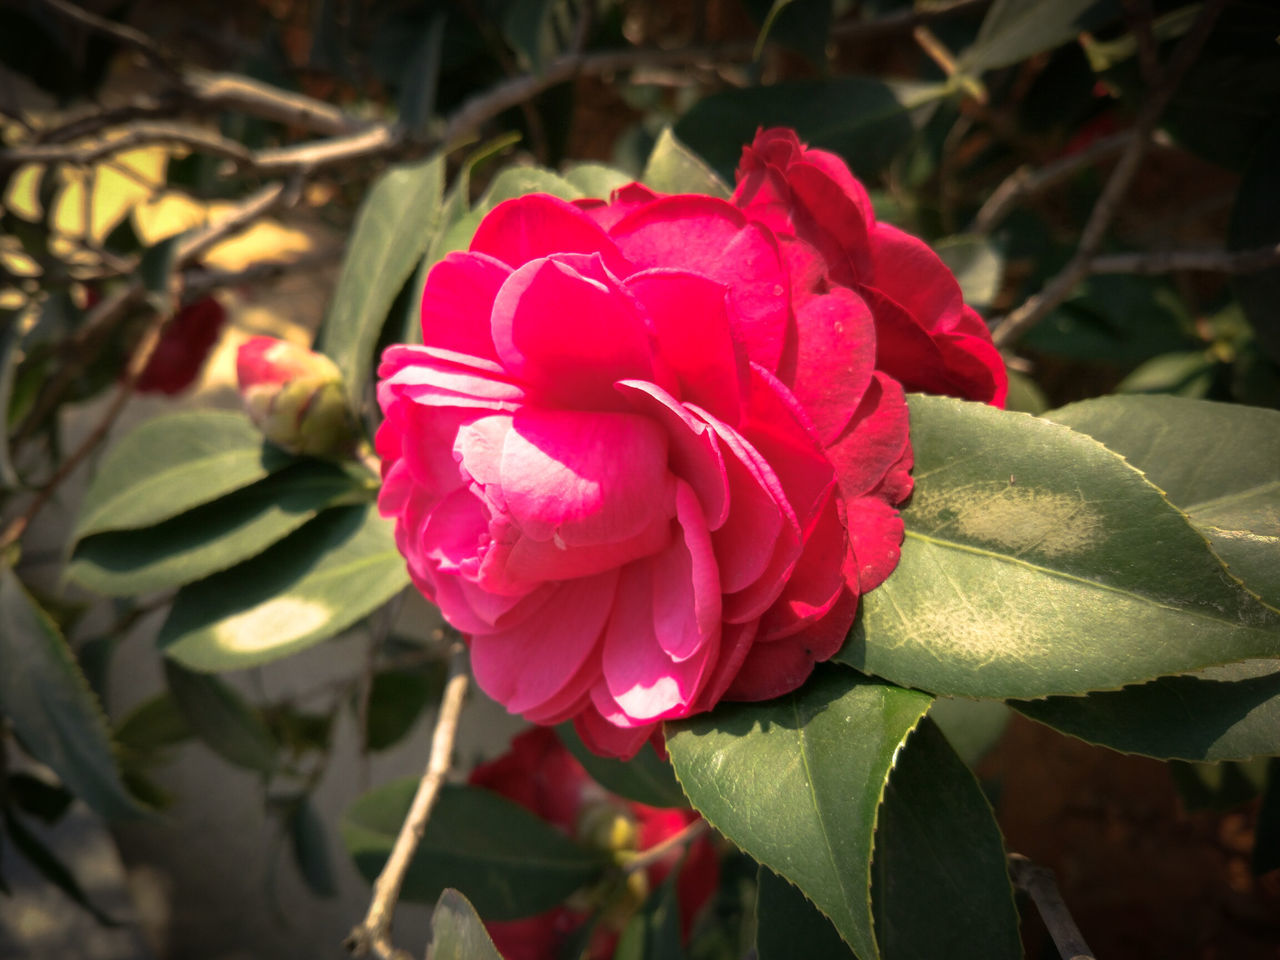 Flower Fragility Nature Petal Rose - Flower Beauty In Nature Plant Freshness Red Outdoors No People MIphotography Goodmorning :)